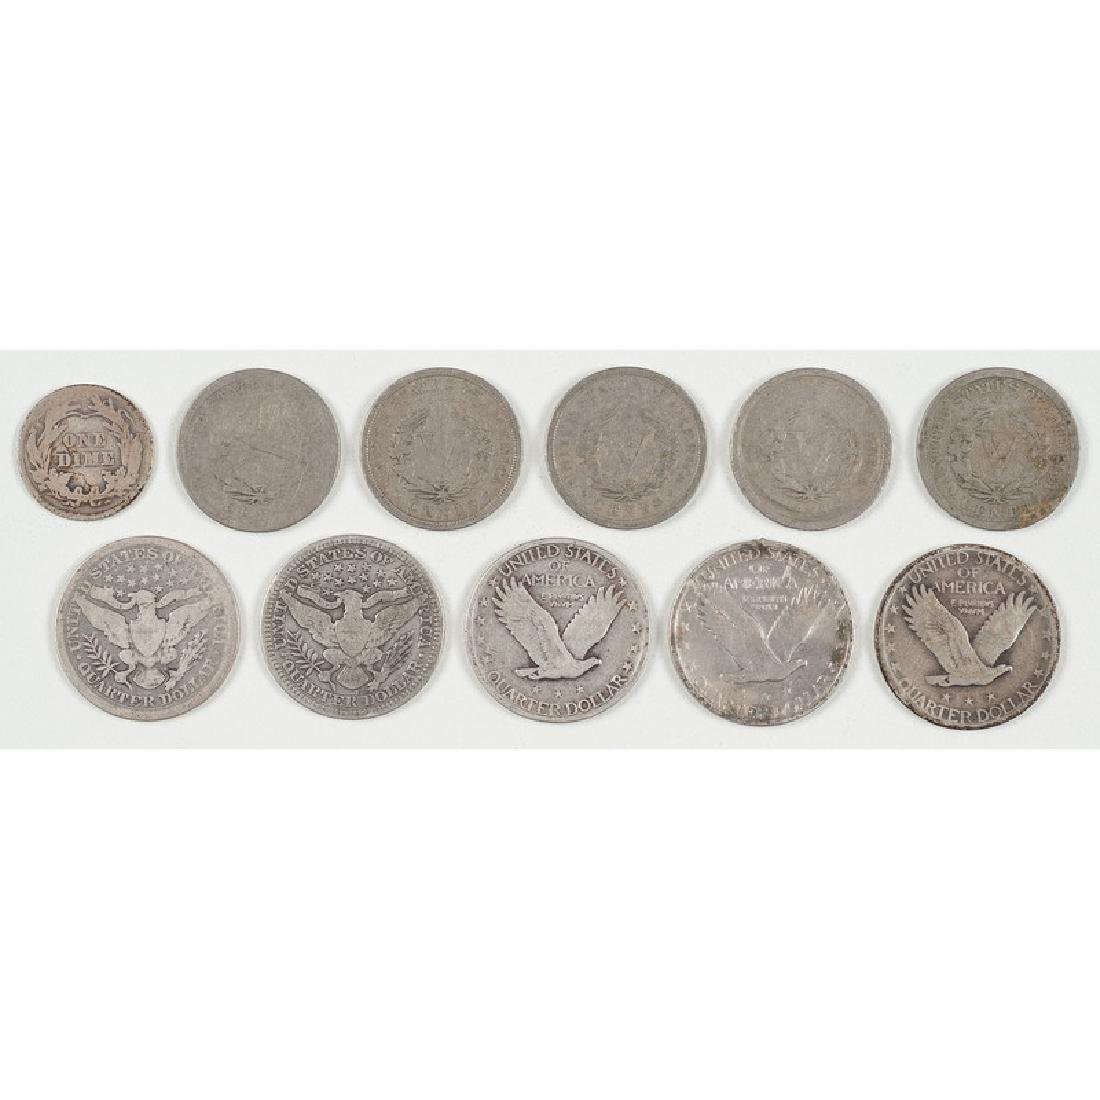 Assorted United States Coins - 2